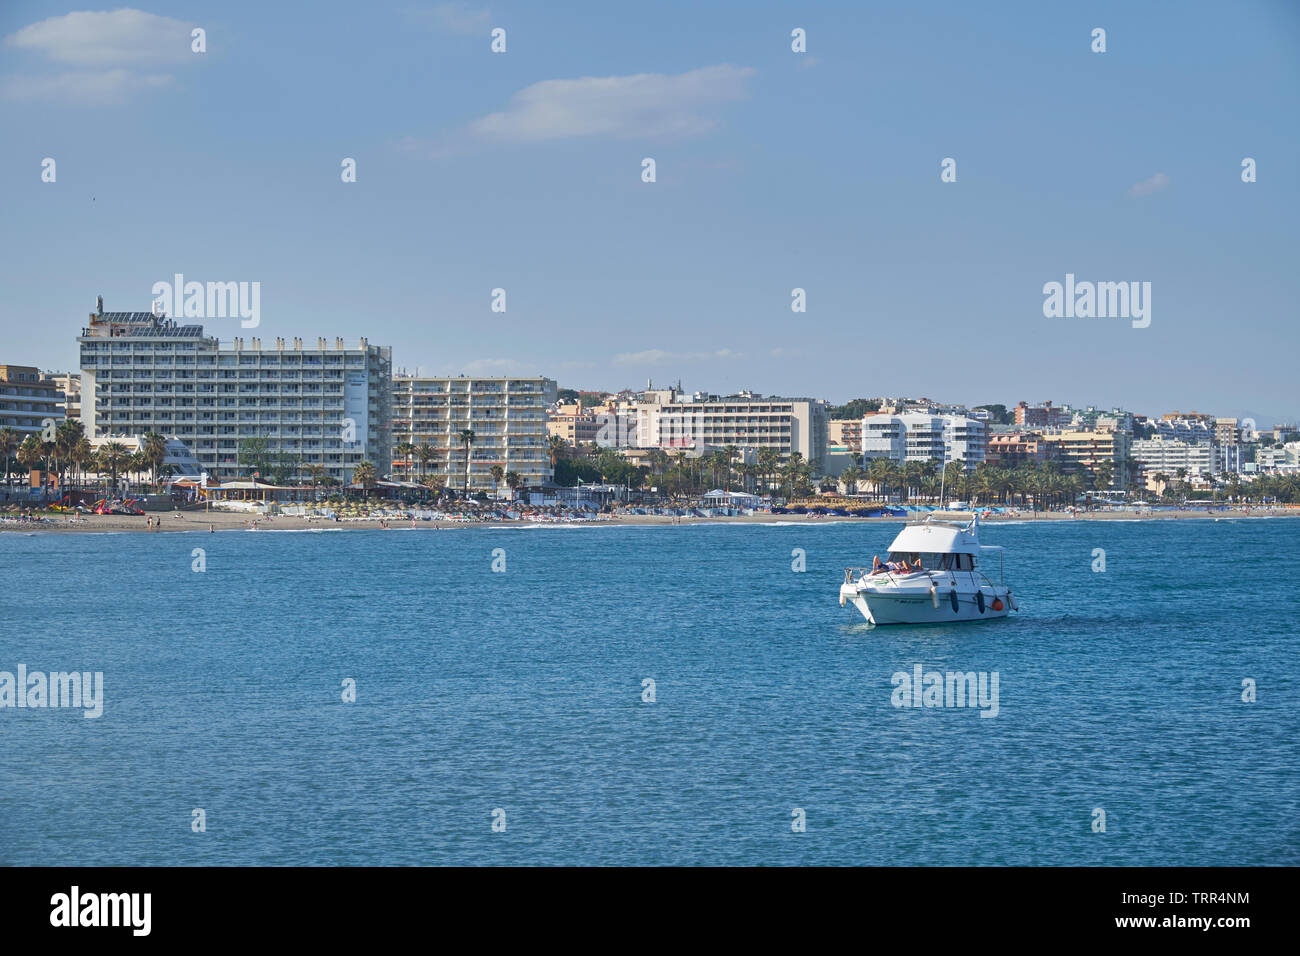 View of Torremolinos. Málaga province, Andalusia, Spain. Stock Photo